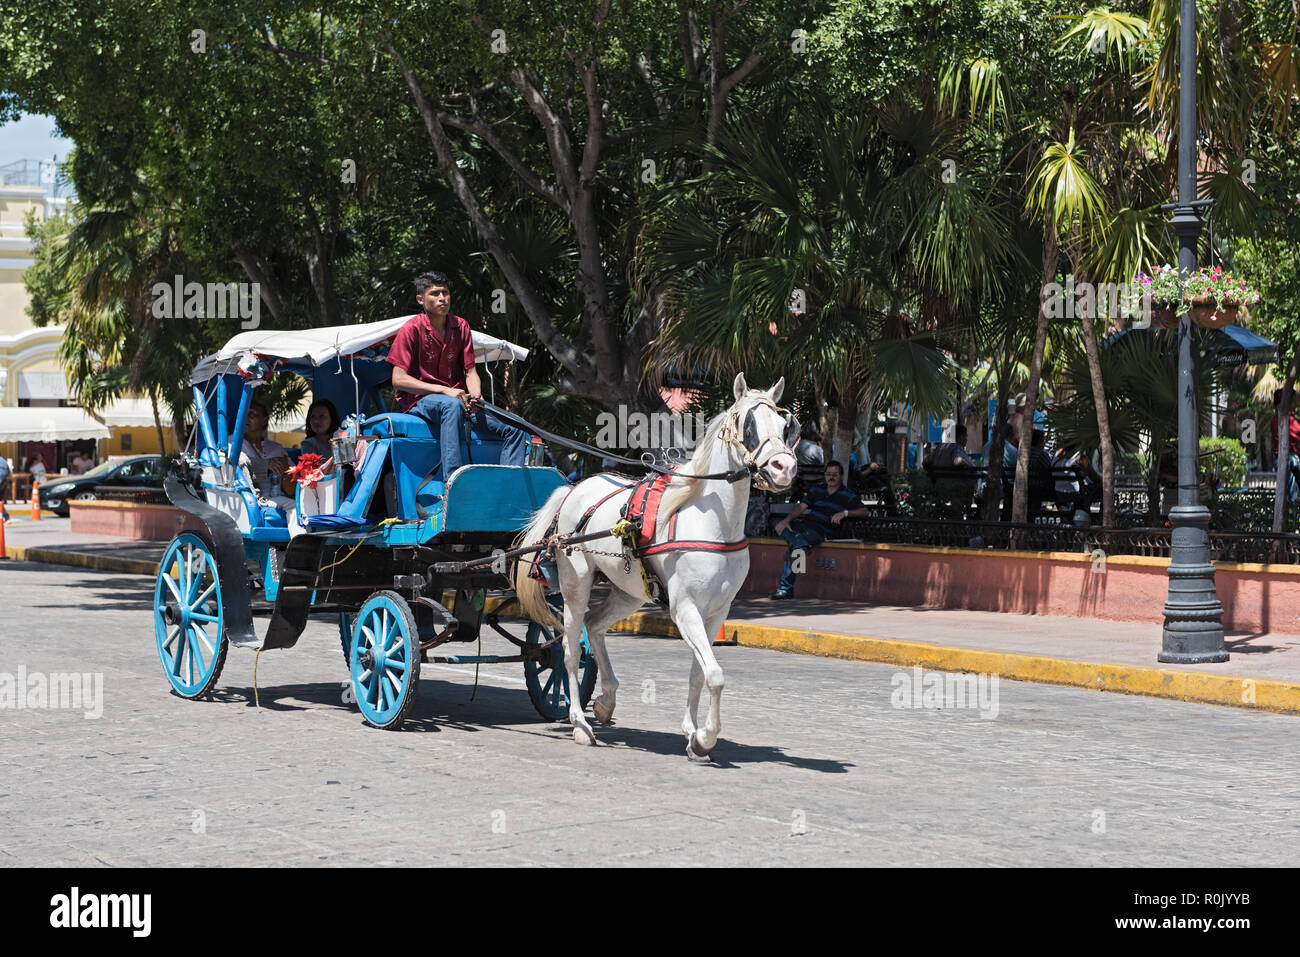 blue horse drawn carriages on a city street in front of the plaza grande square in merida, mexico. - Stock Image